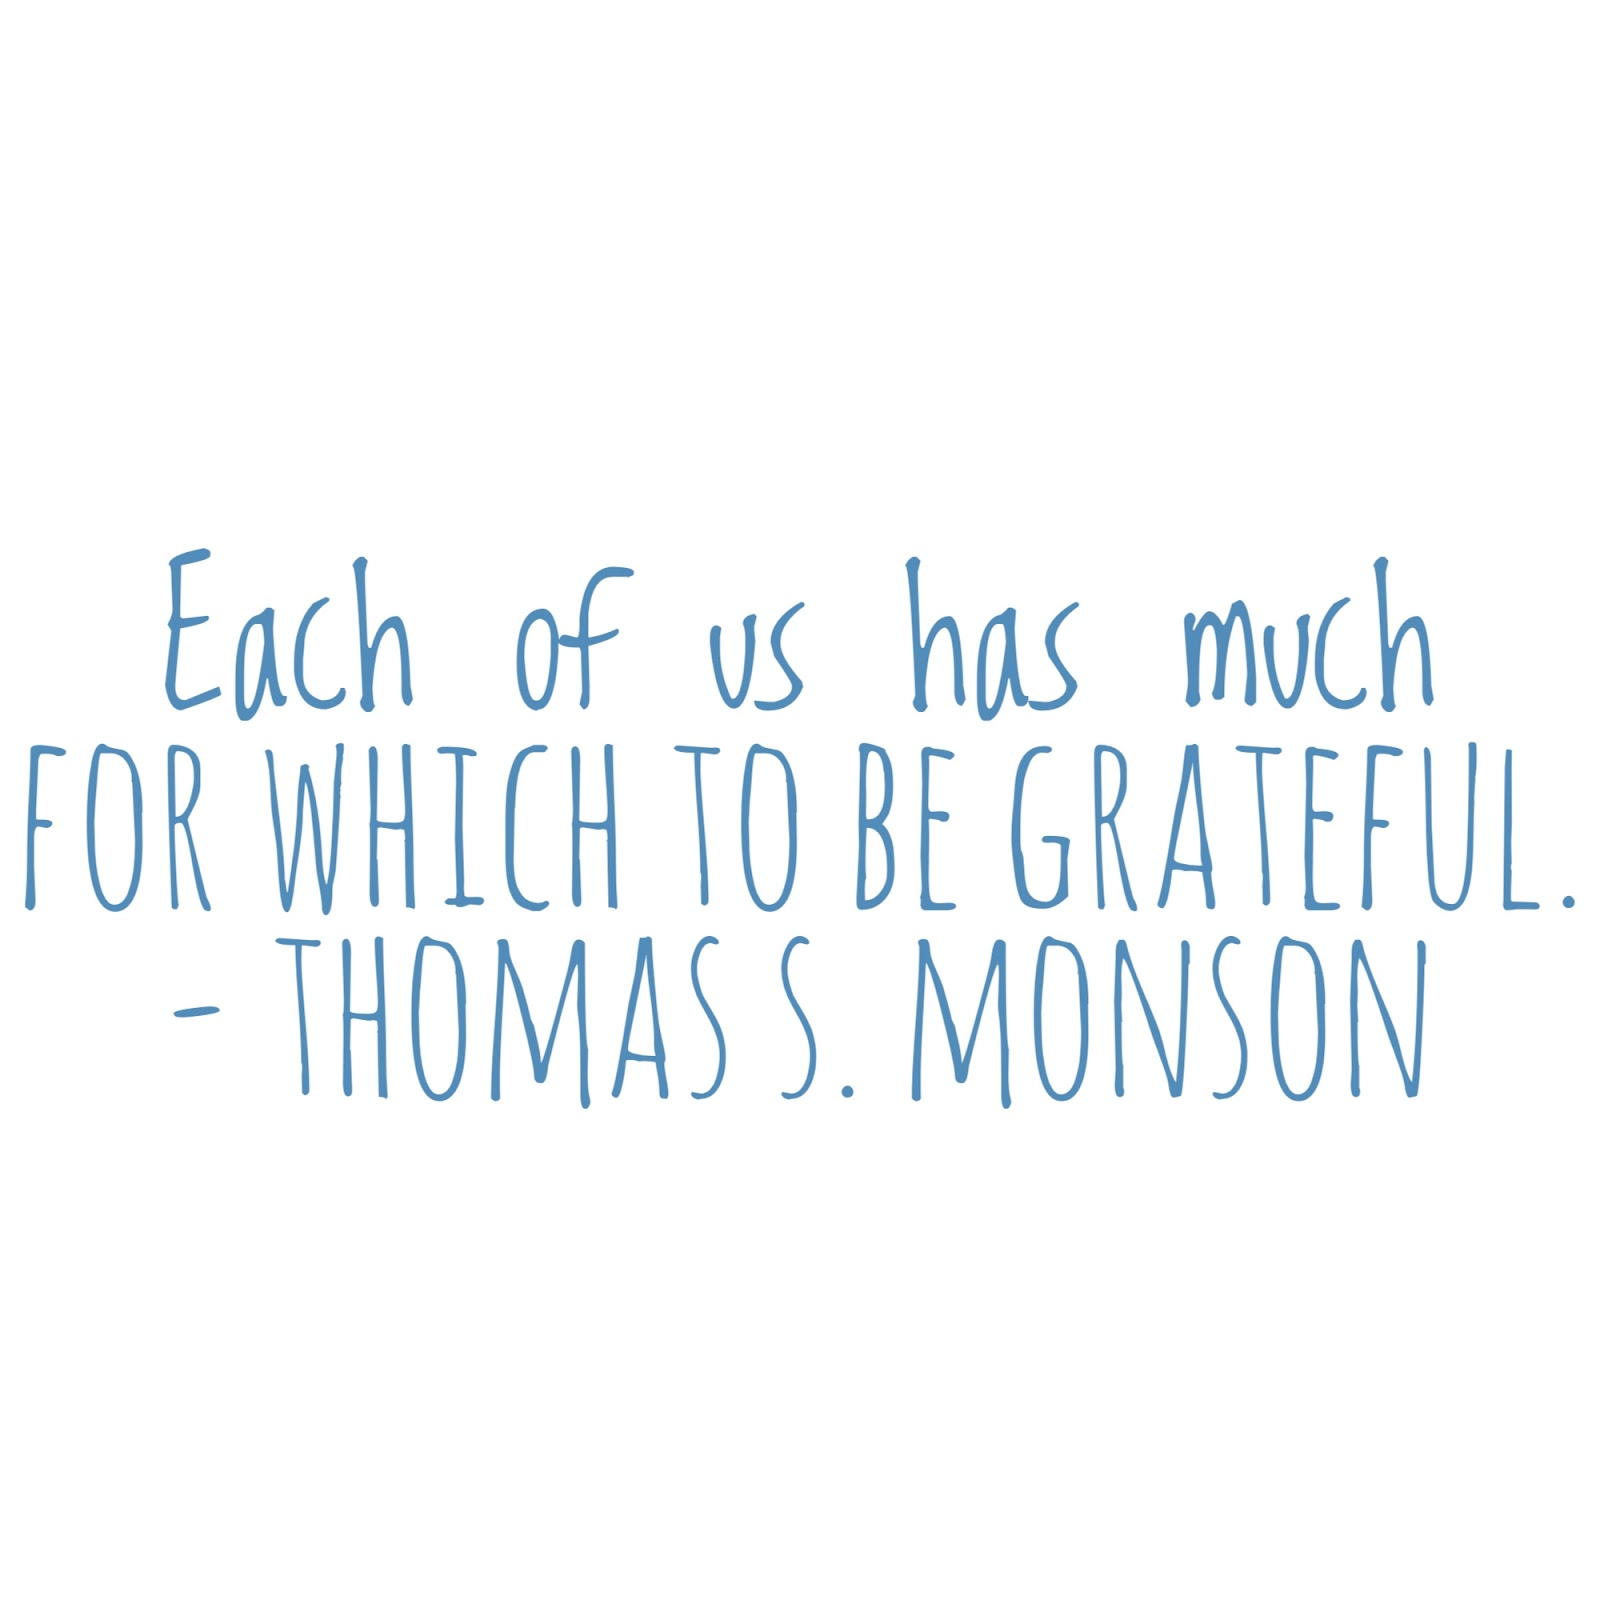 Each of us has much to be grateful for - Thomas S. Monson